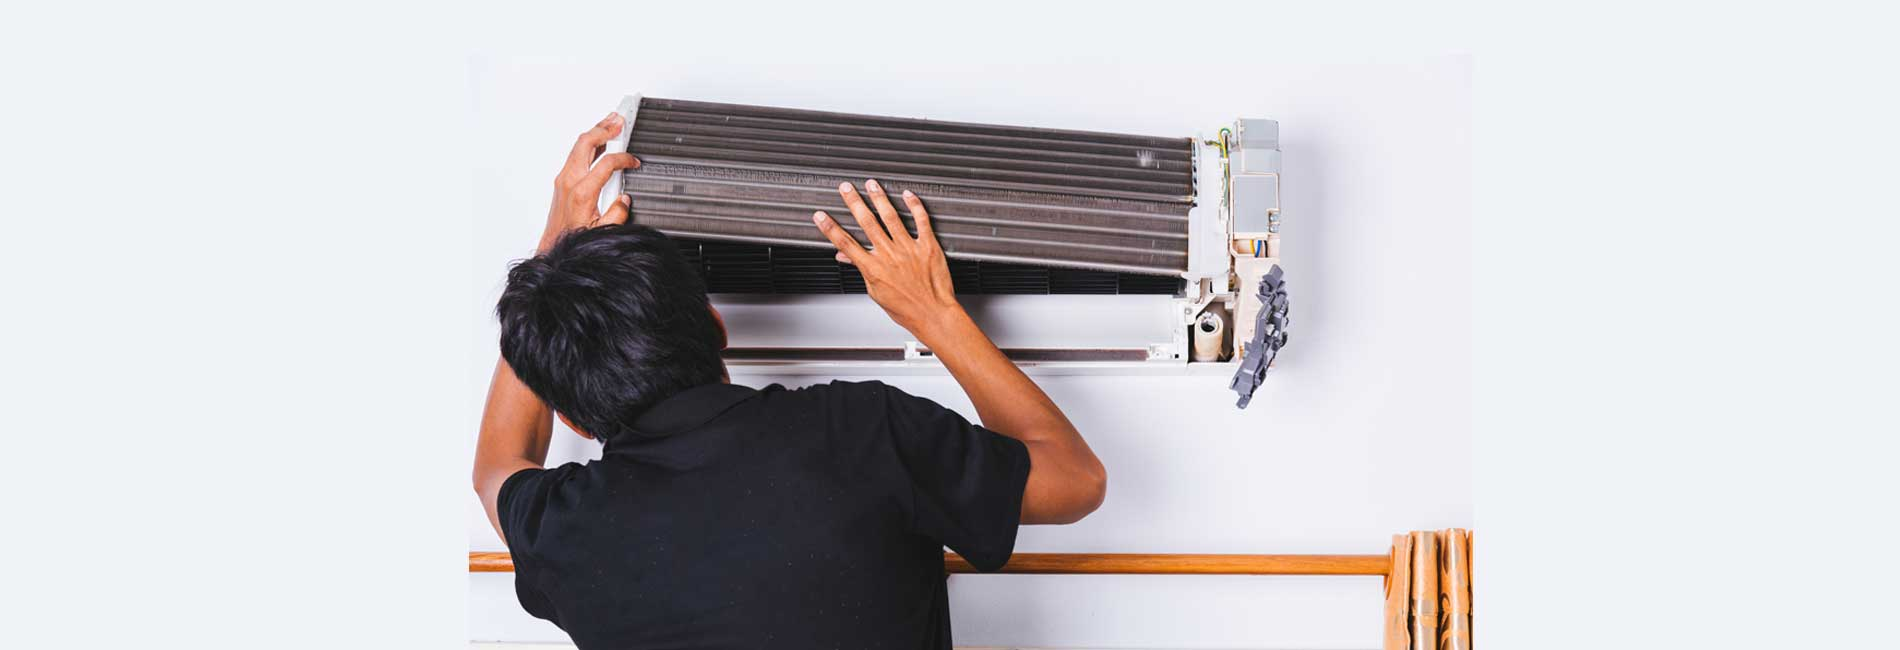 IFB Split AC Uninstallation in Vallalar Nagar